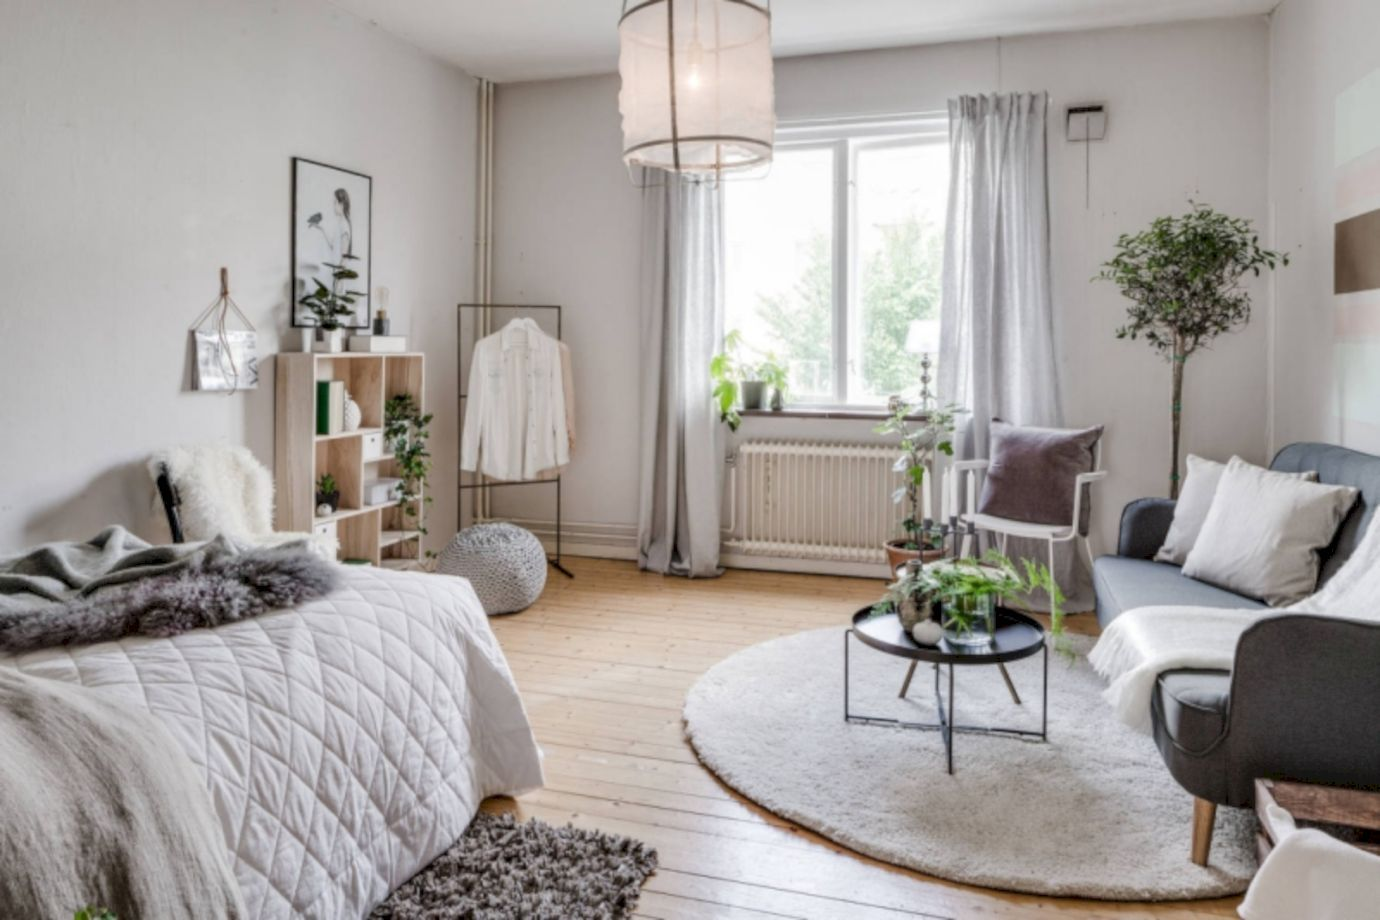 50 Cozy Minimalist Studio Apartment Decor Ideas | when i move to the ...